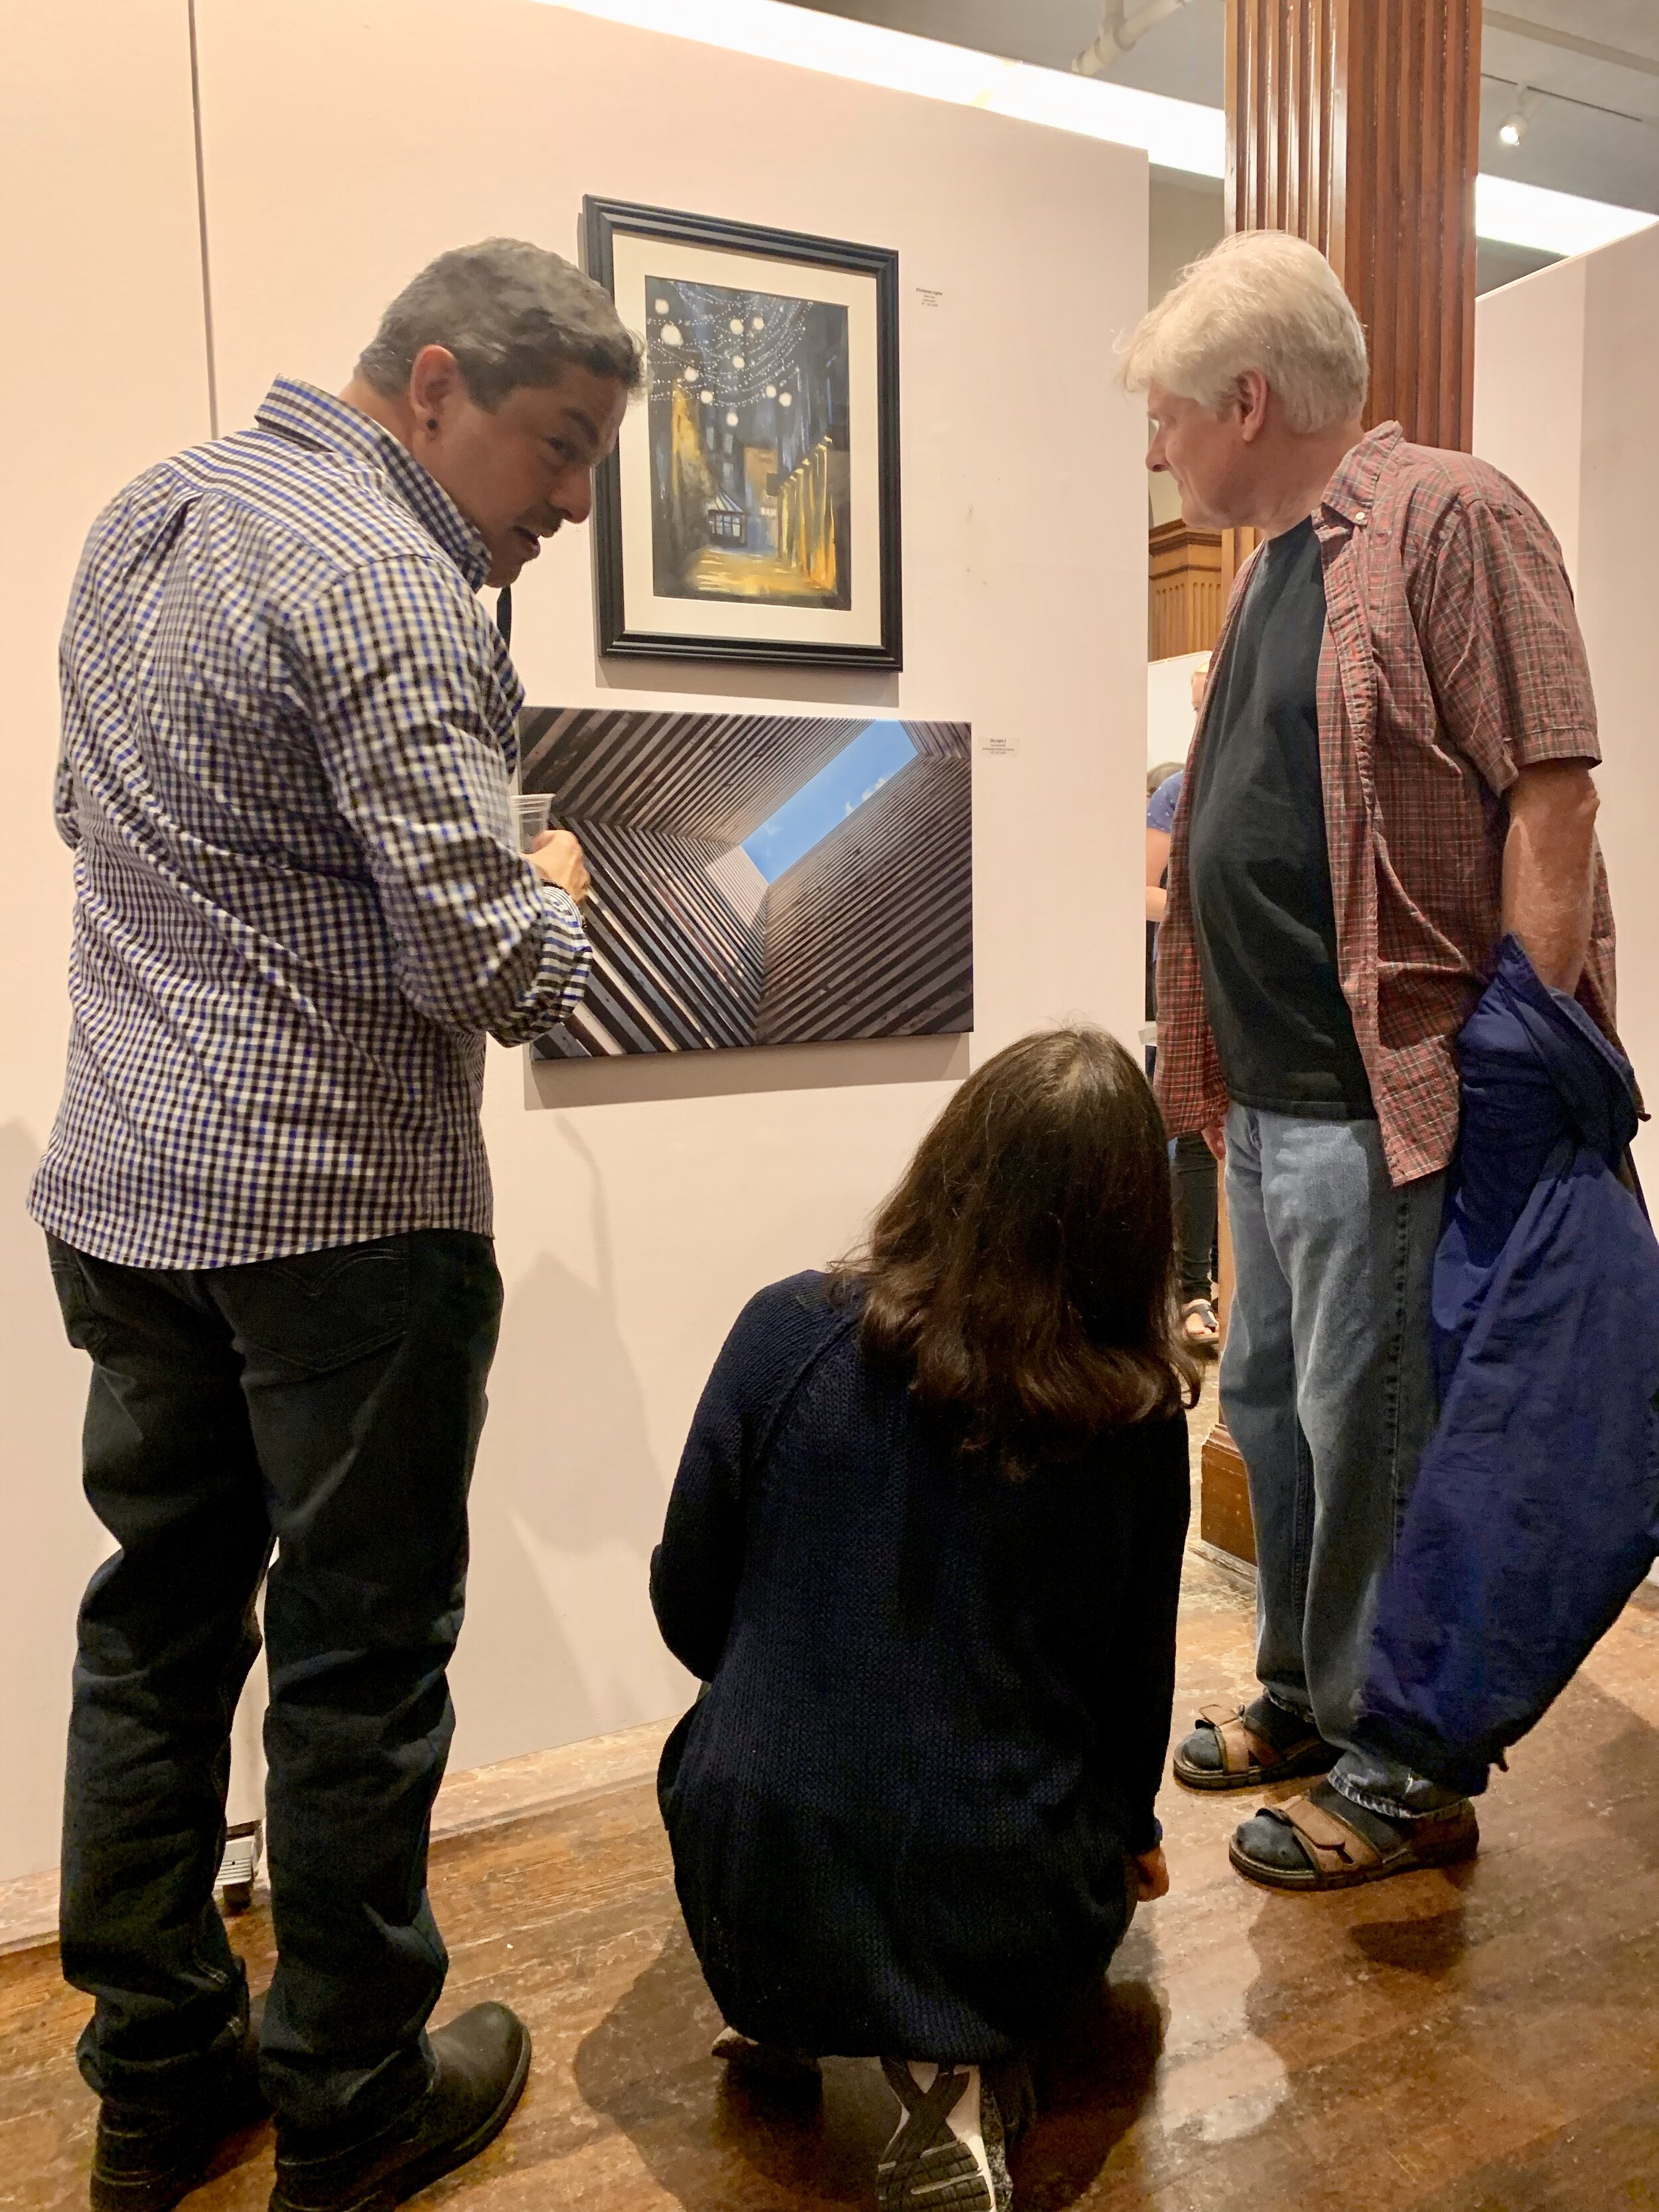 Opening reception brings many attendees interested to see the 40+ works on display in the Phinney Center Gallery